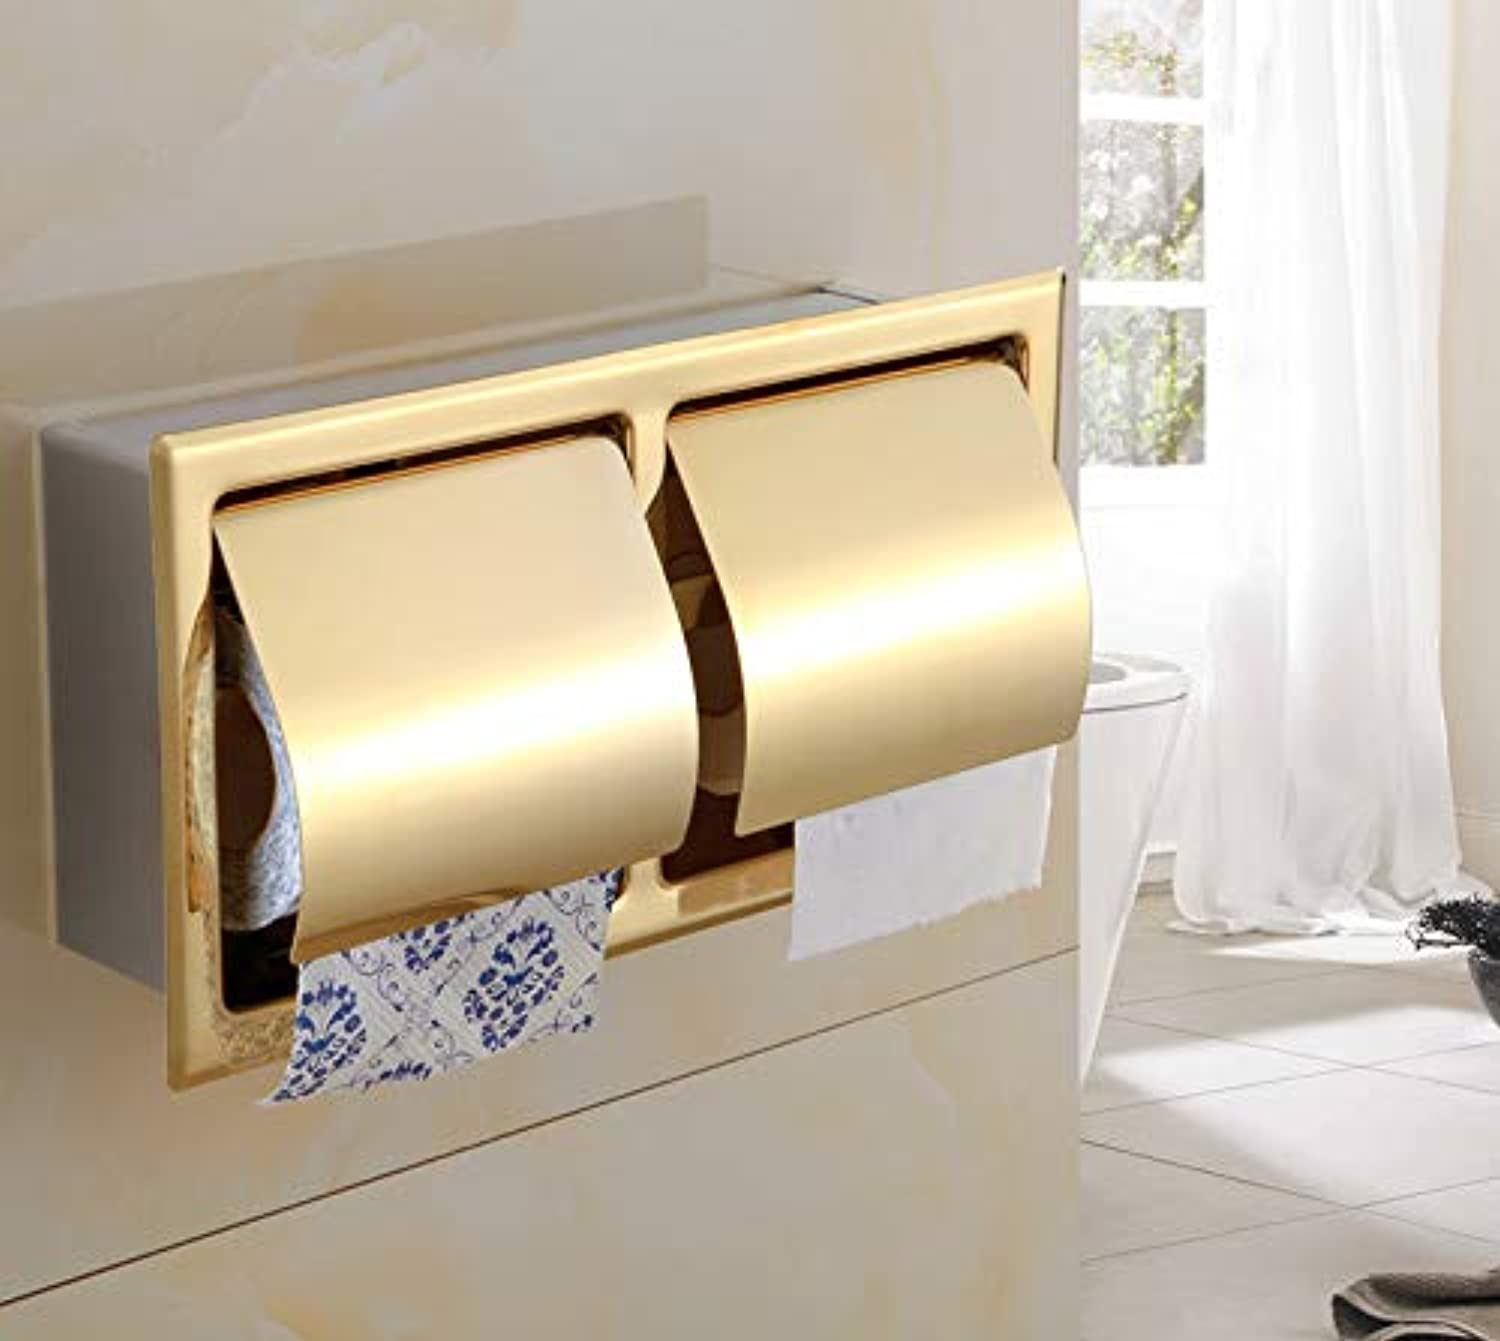 LUDSUY Sus 304 Stainless Steel Bathroom Toilet Roll Paper Holder Box Concealed Wall Mounted Recessed Tissue Paper Holder Pvd gold